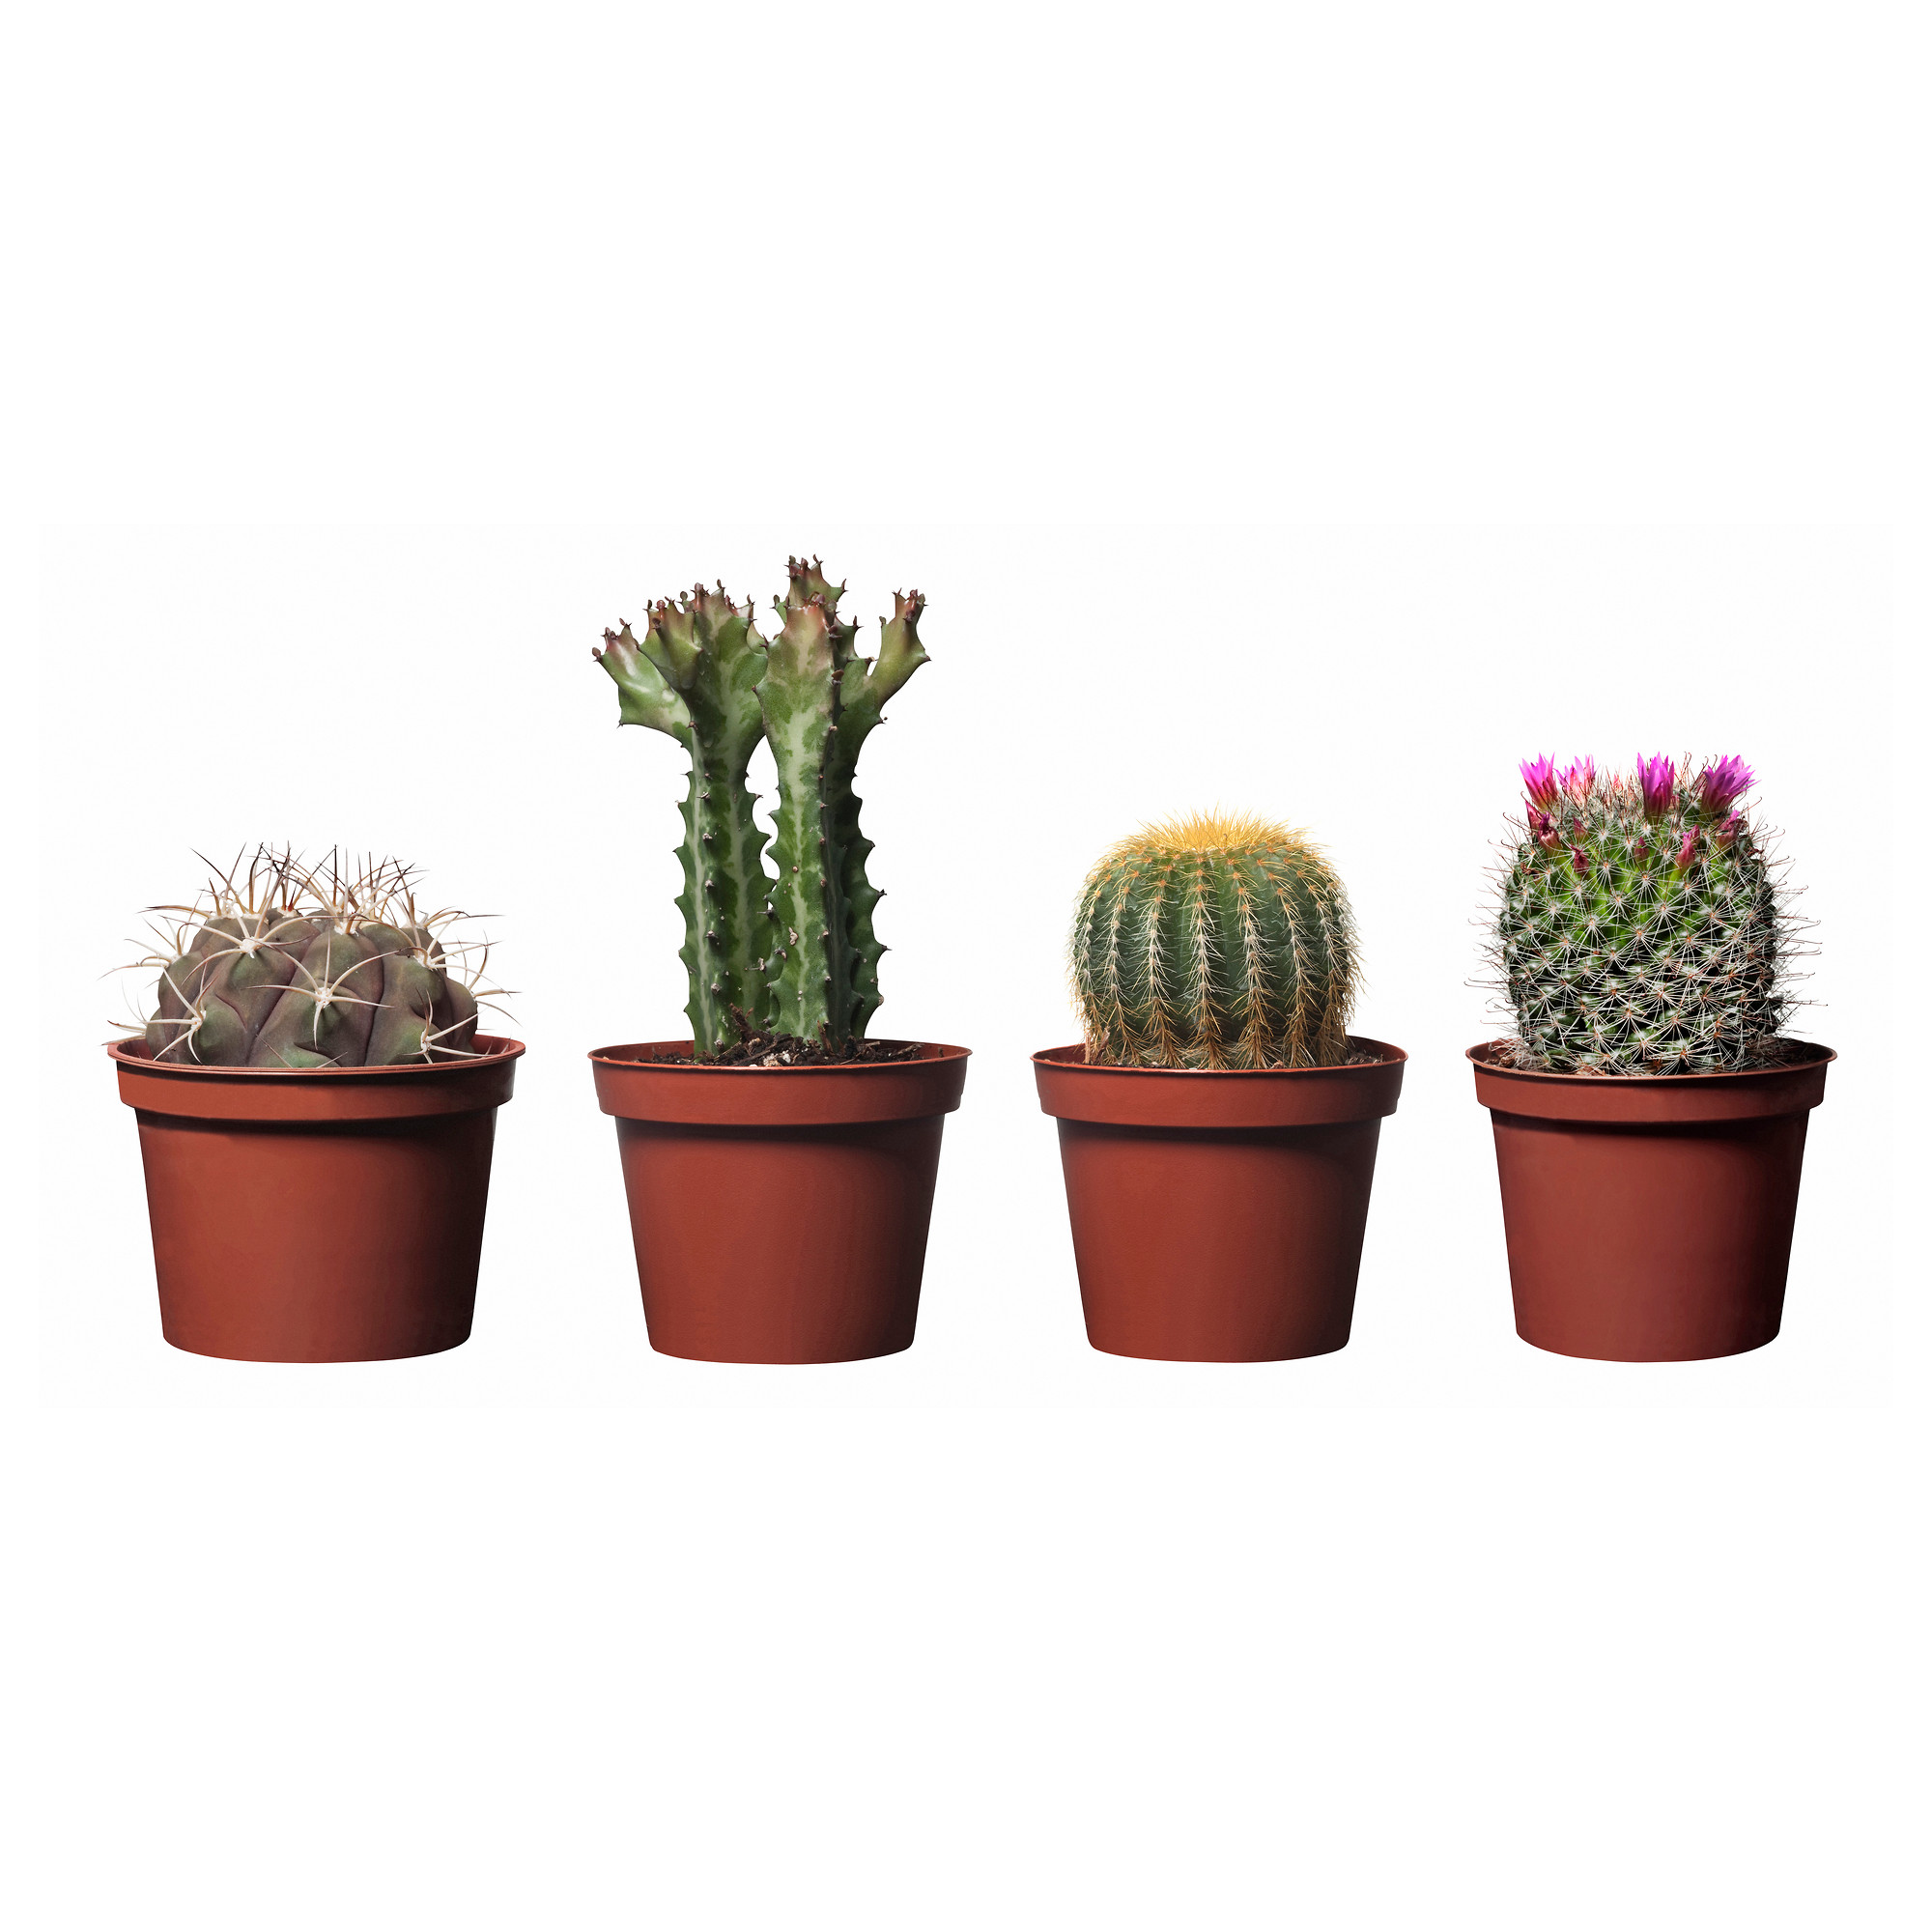 Ikea Cactus Plants Home Designs Project